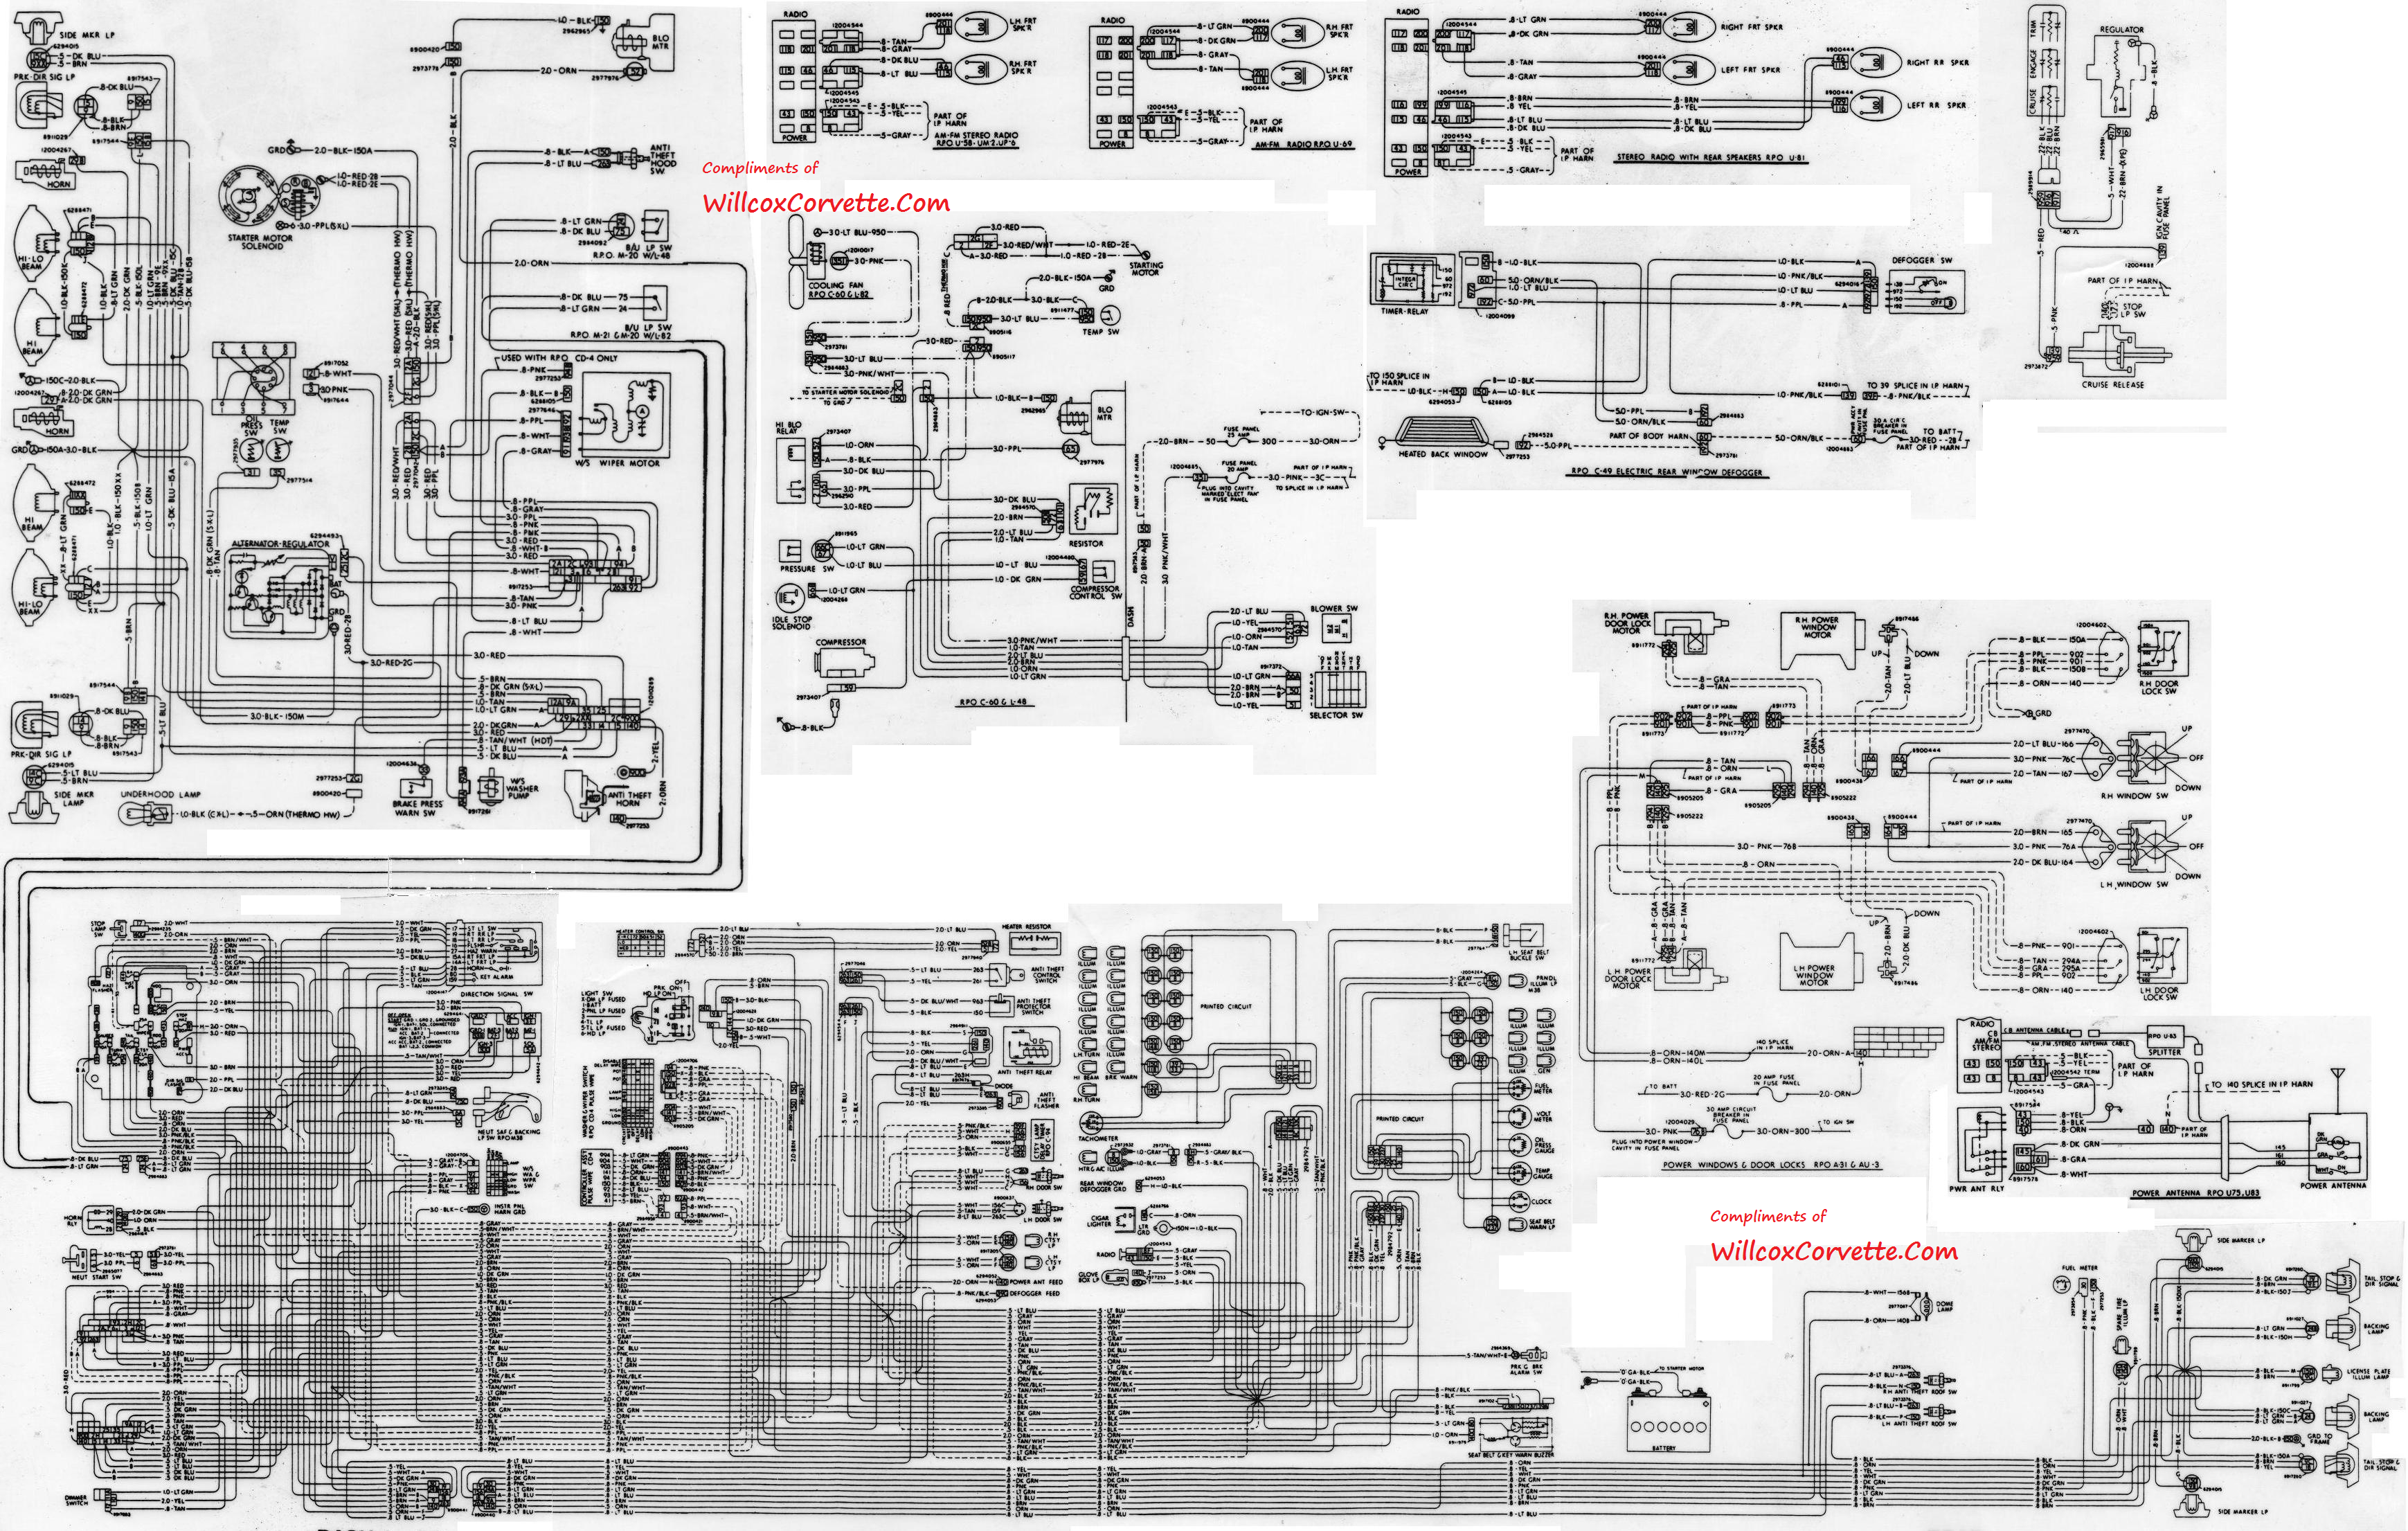 79 COMBINED TRACER SCHEMATIC 1979 wiring diagram corvetteforum chevrolet corvette forum Single Phase Compressor Wiring Schematics at creativeand.co